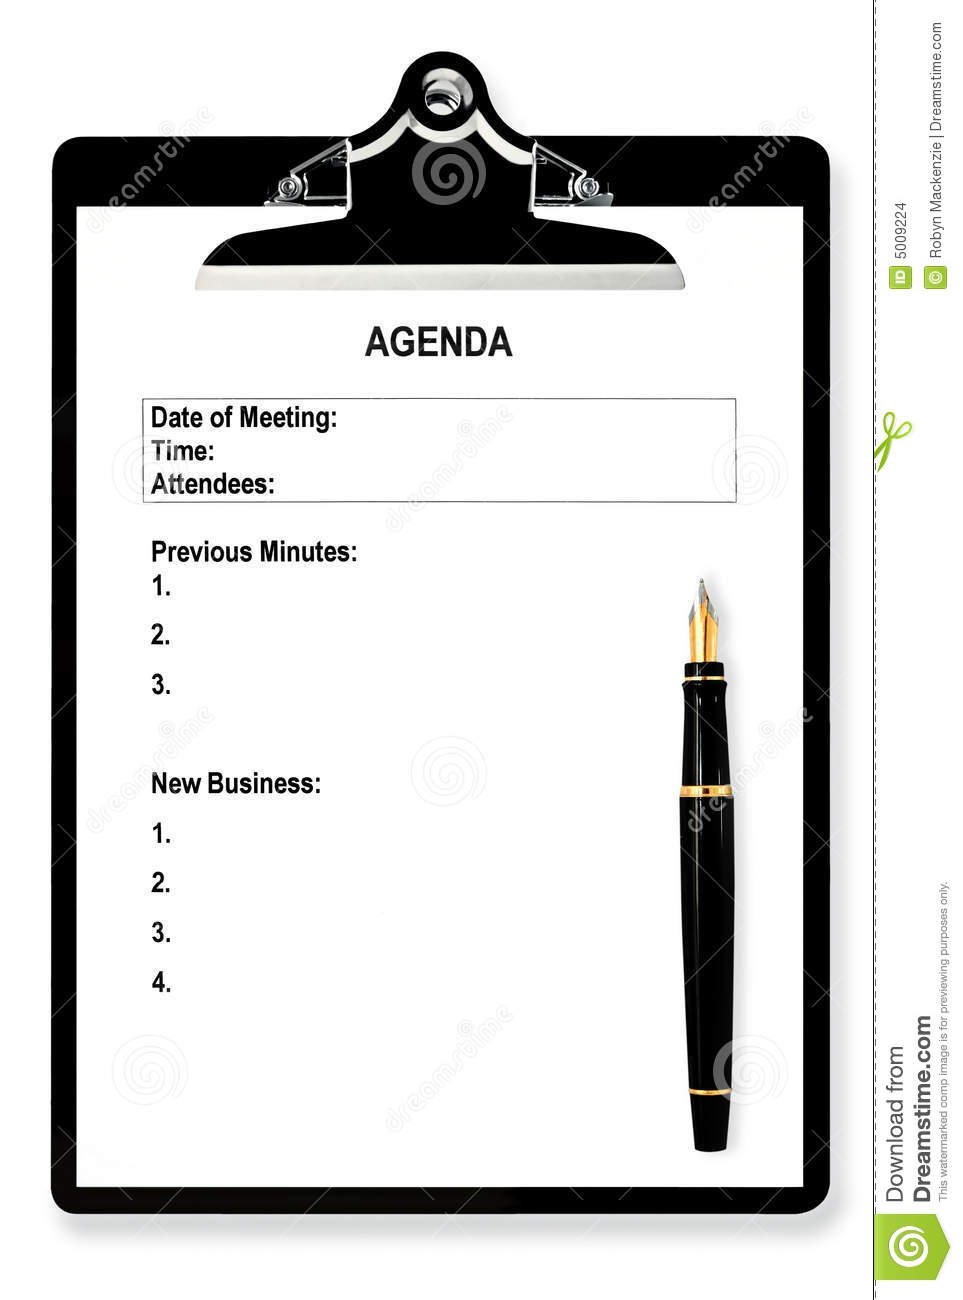 meeting agenda stock images